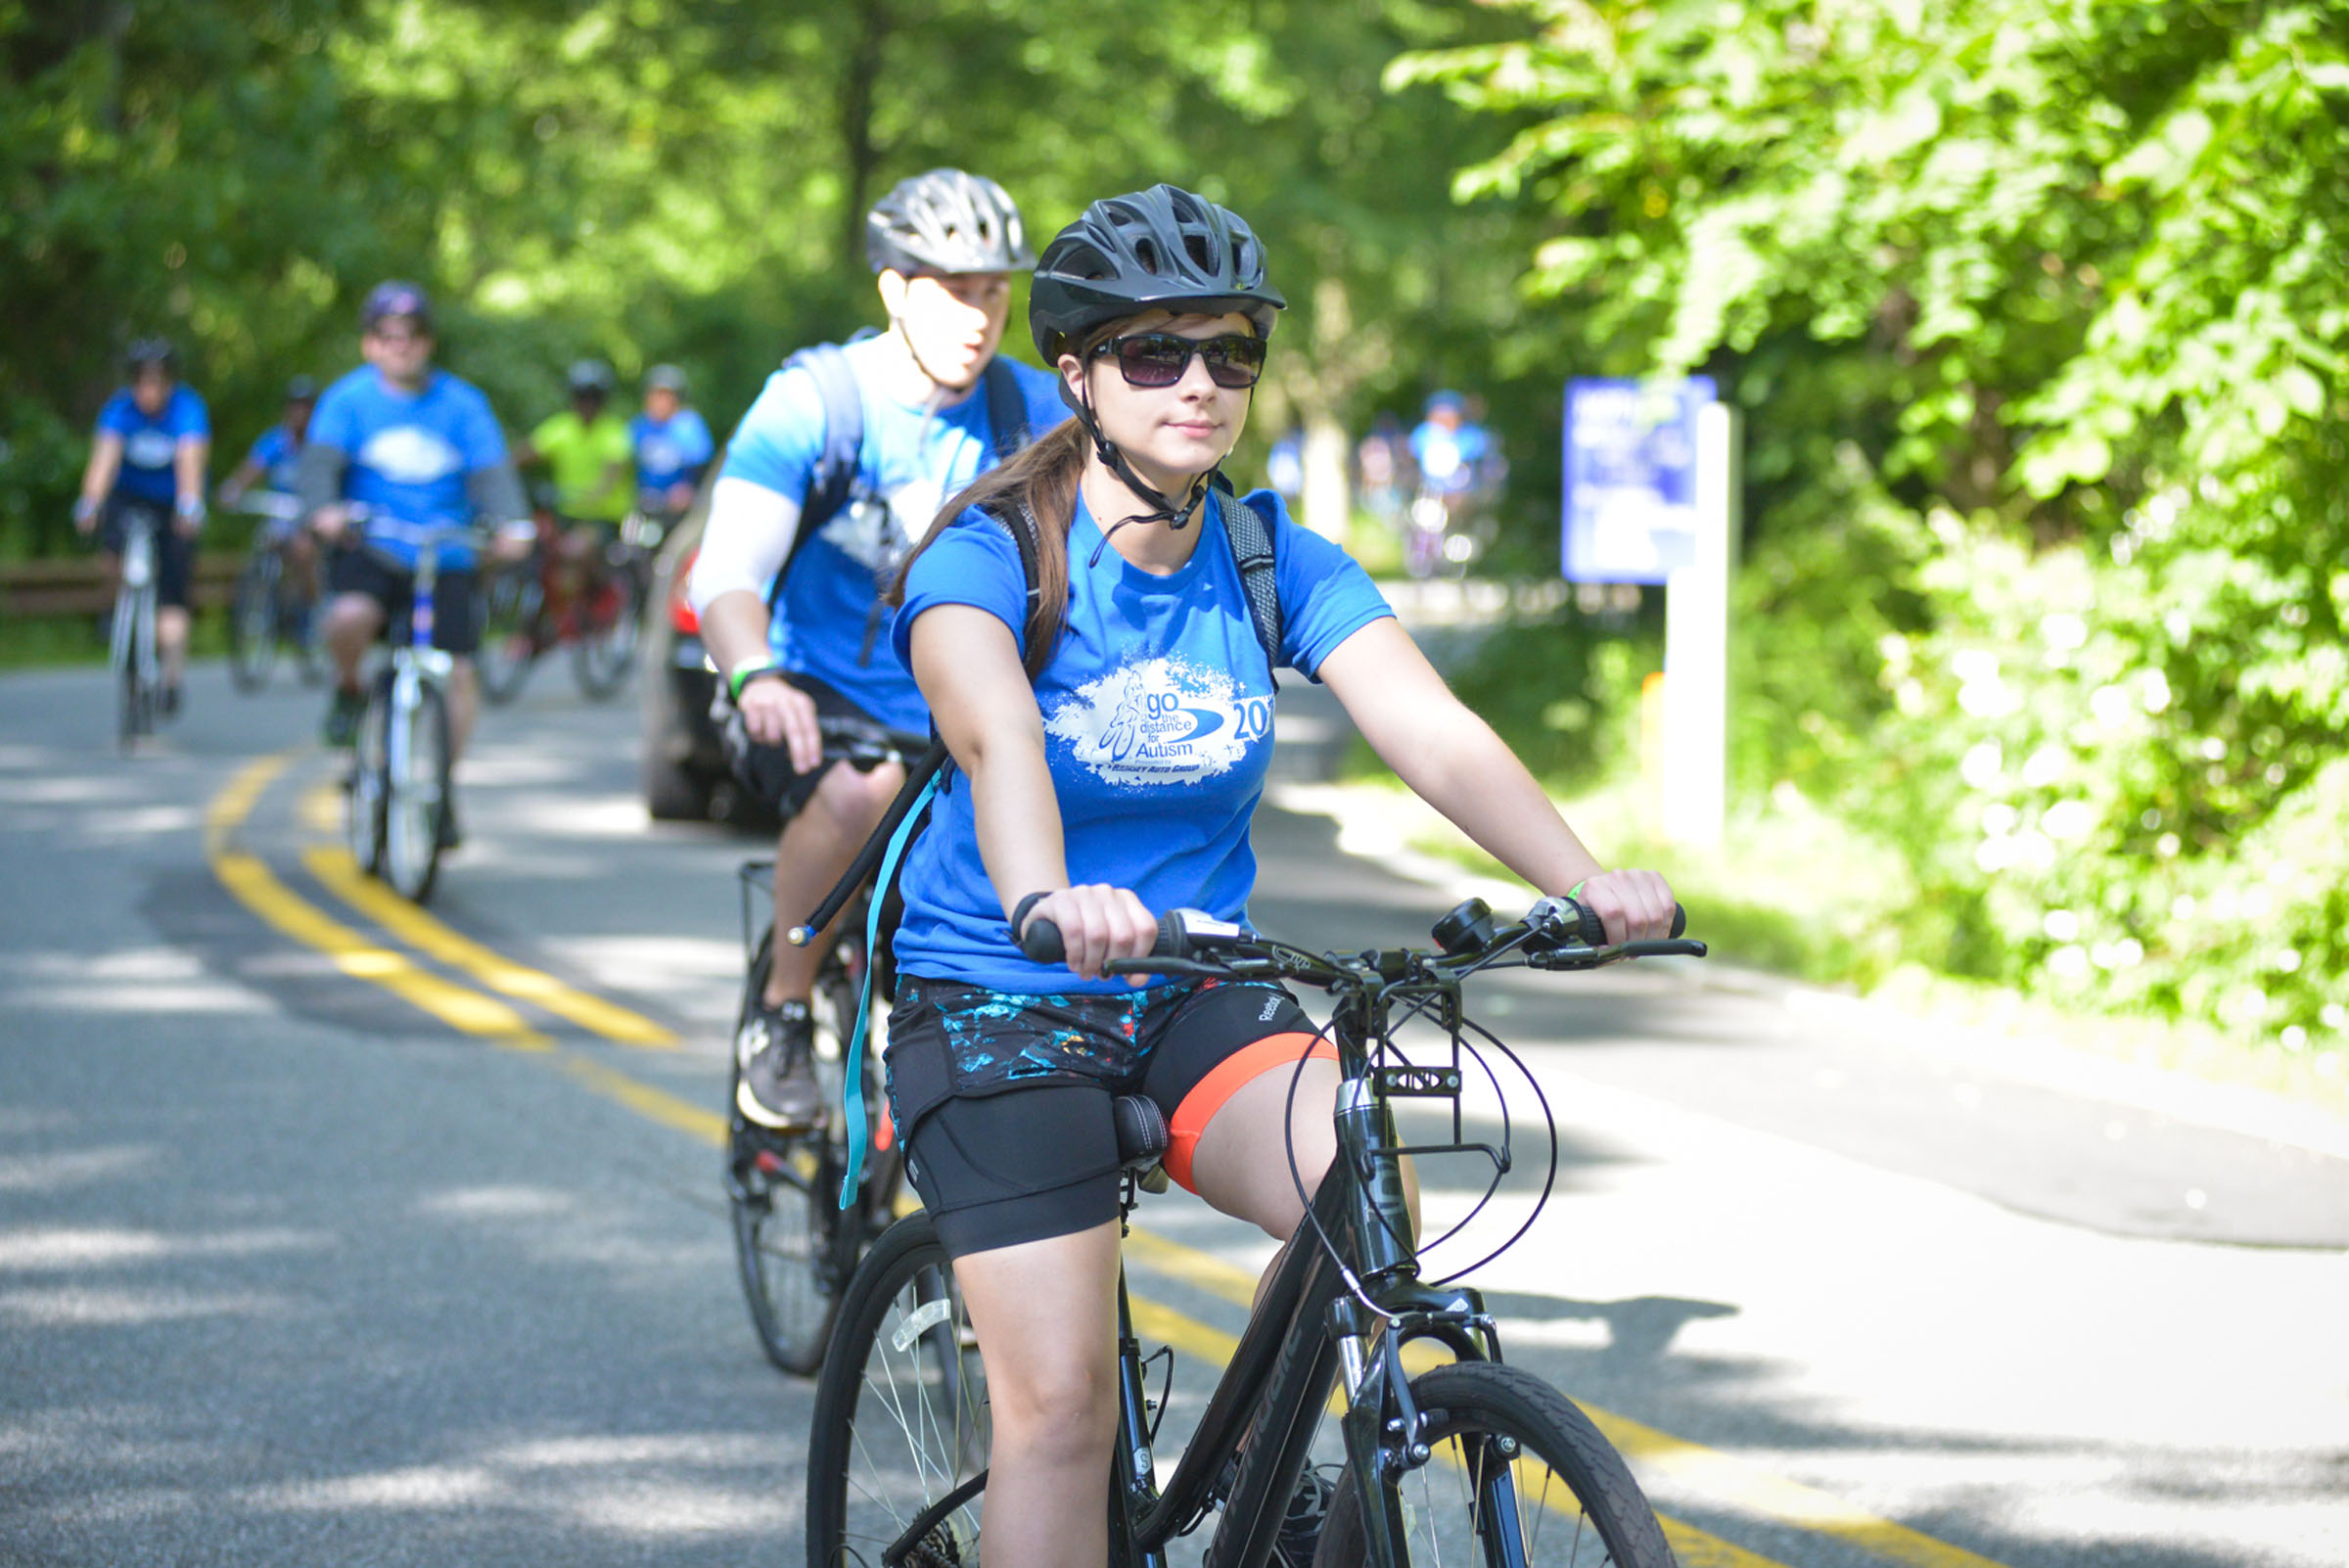 2017-06-04 GTD4A Charity Bike Ride - BCC - Paramus NJ-1968.jpg